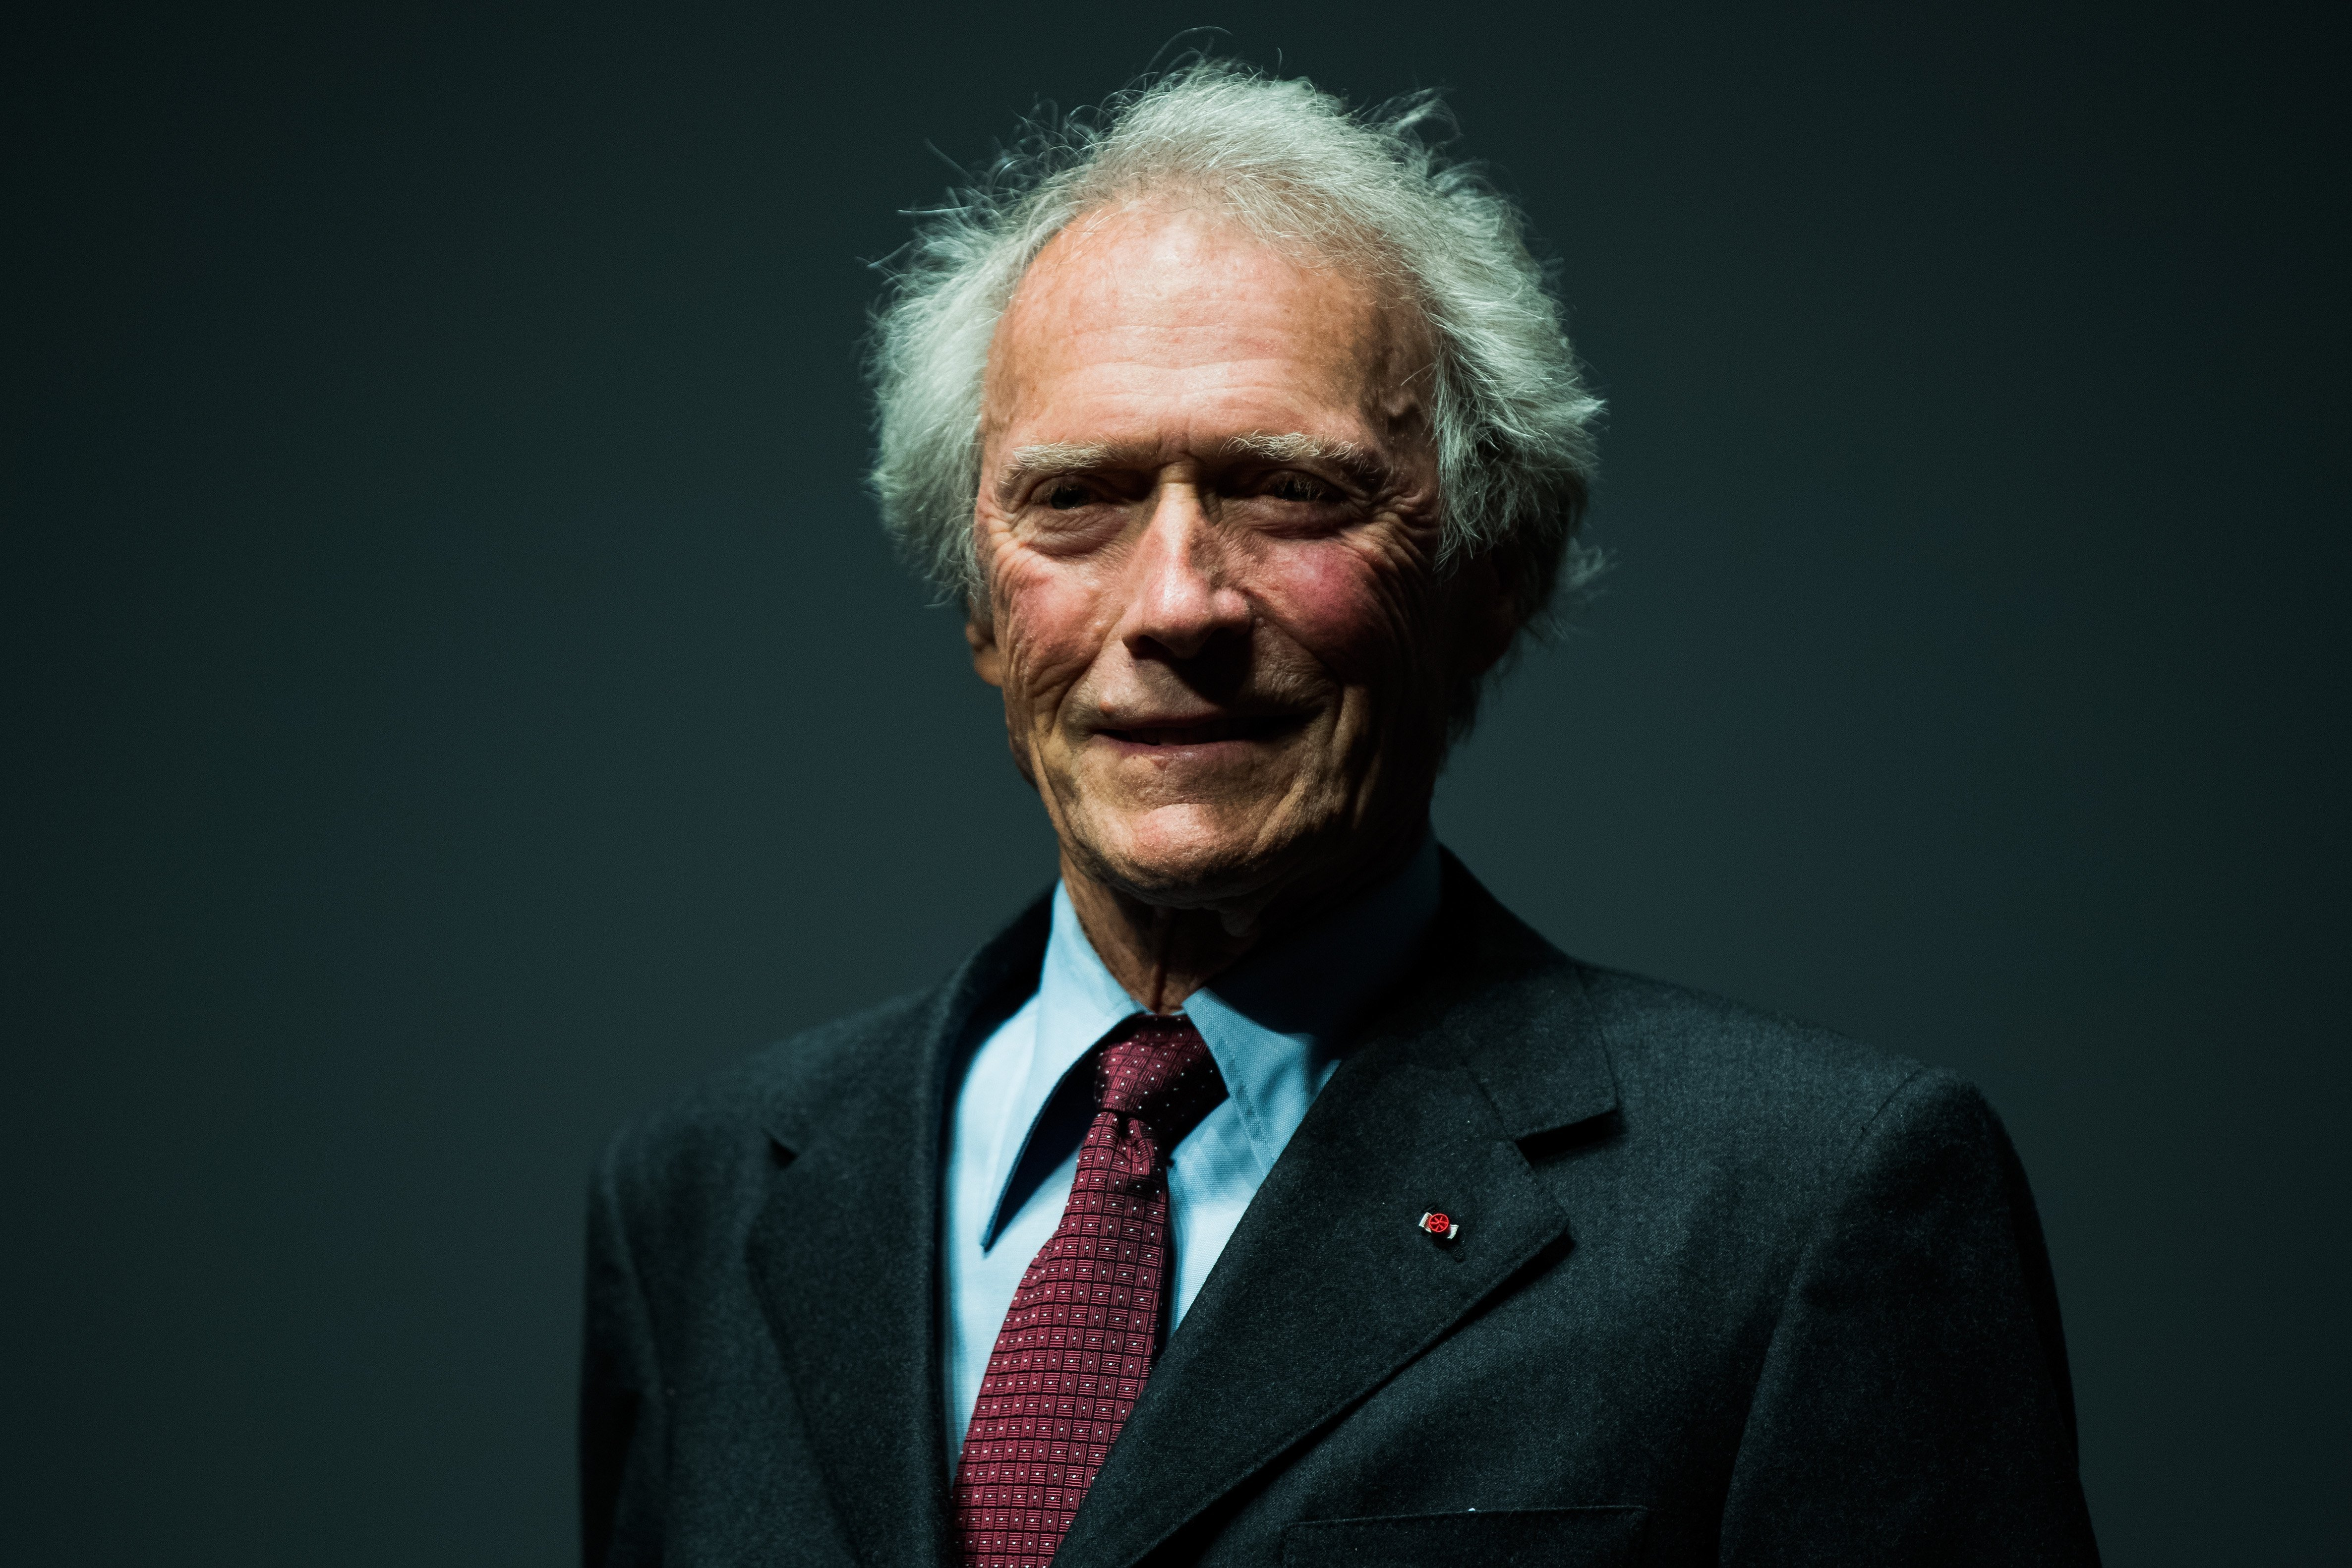 Clint Eastwood at the 70th annual Cannes Film Festival at Salle Debussy on May 20, 2017 | Photo: GettyImages